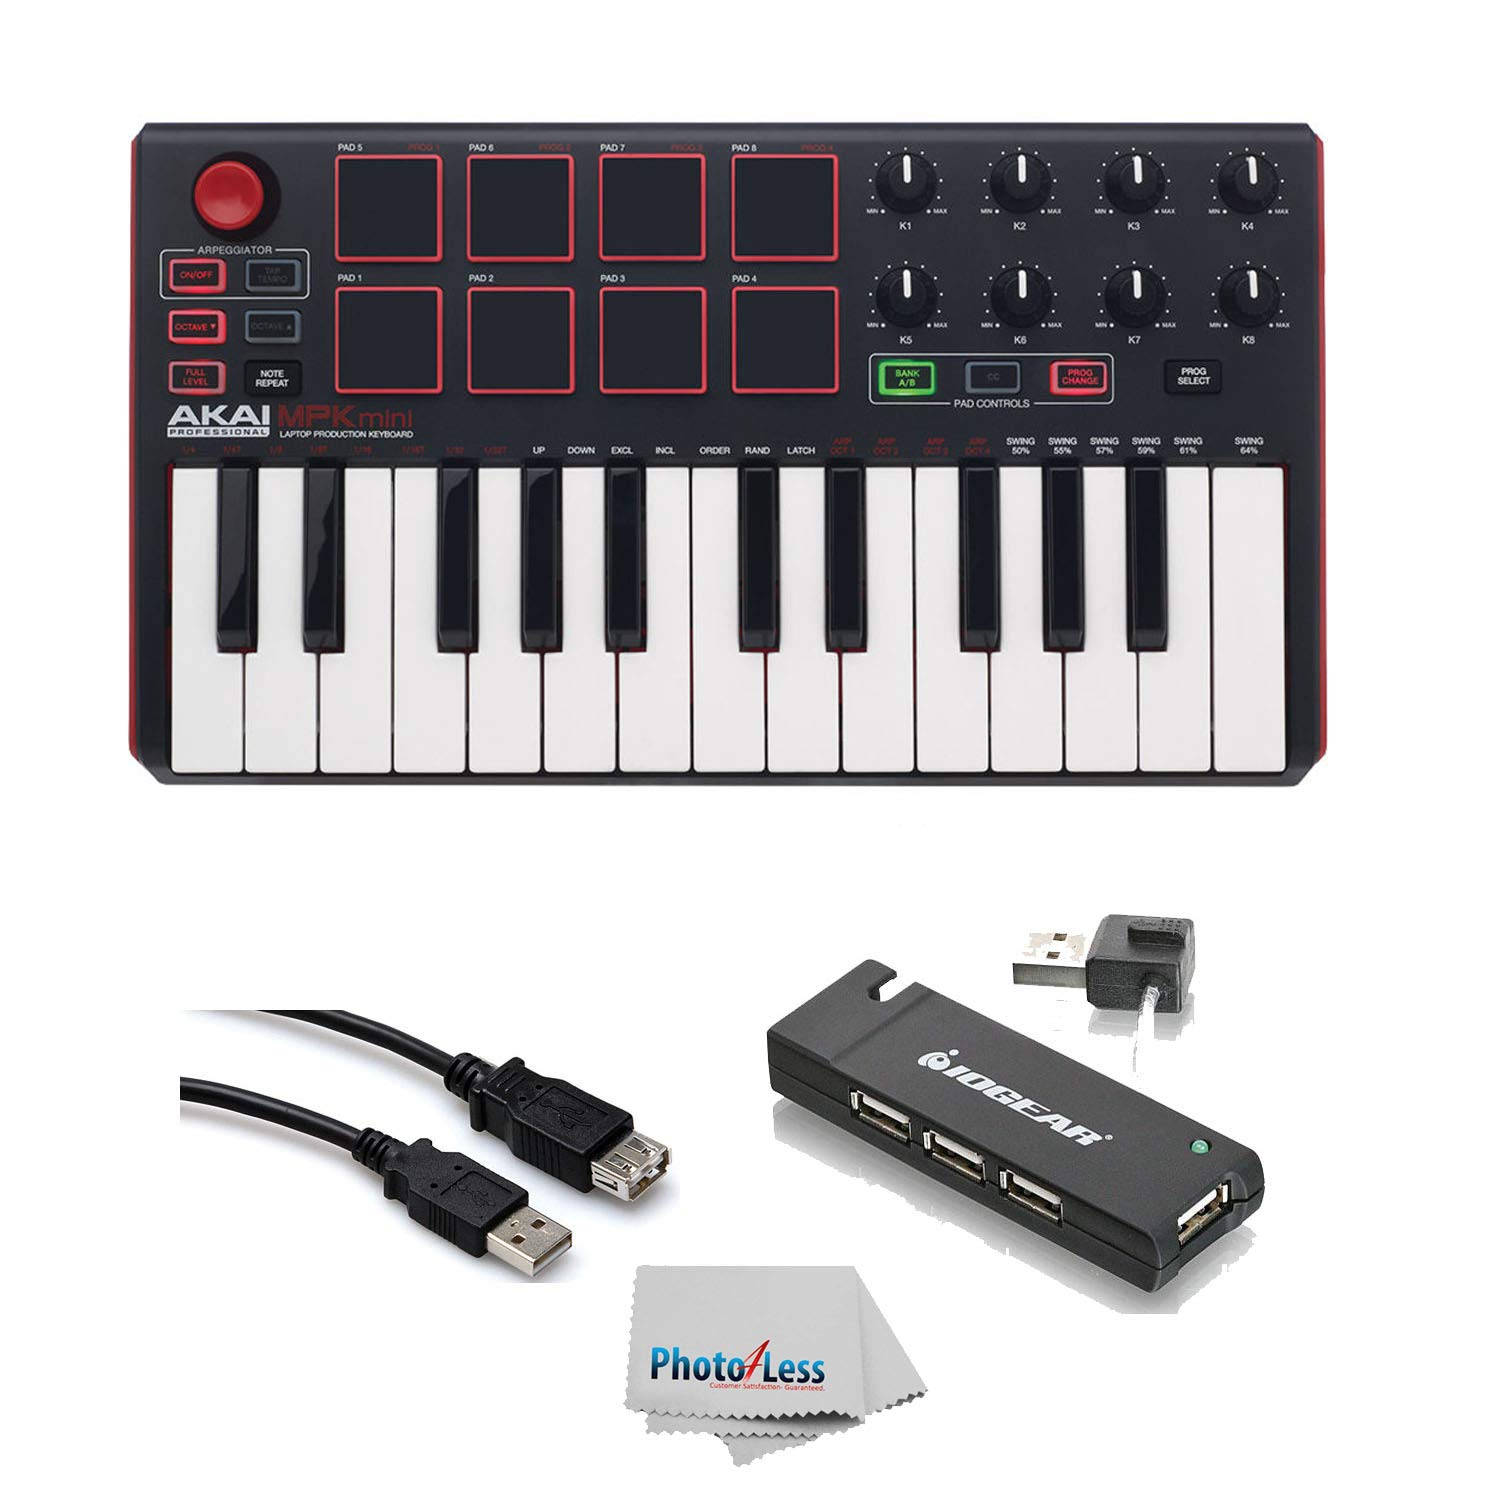 Akai Professional MPK MINI MK2 MKII | 25-Key Ultra-Portable USB MIDI Drum Pad & Keyboard Controller (Red/Black)+ 4-Port USB 2.0 Hub + High Speed USB Extension Cable + Clean Cloth